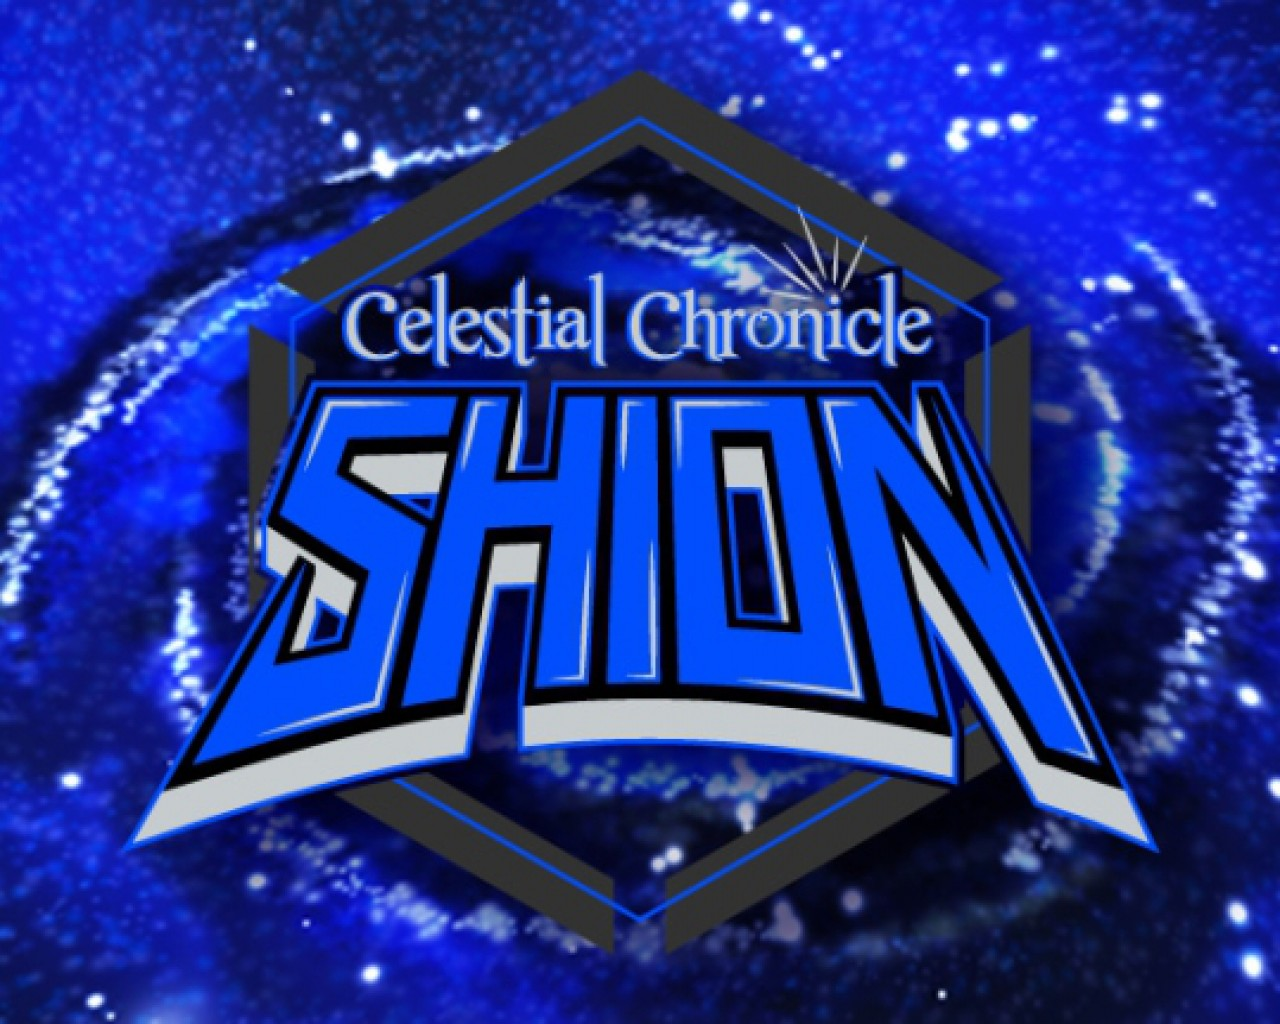 Poster Image for Celestial Chronicle Shion